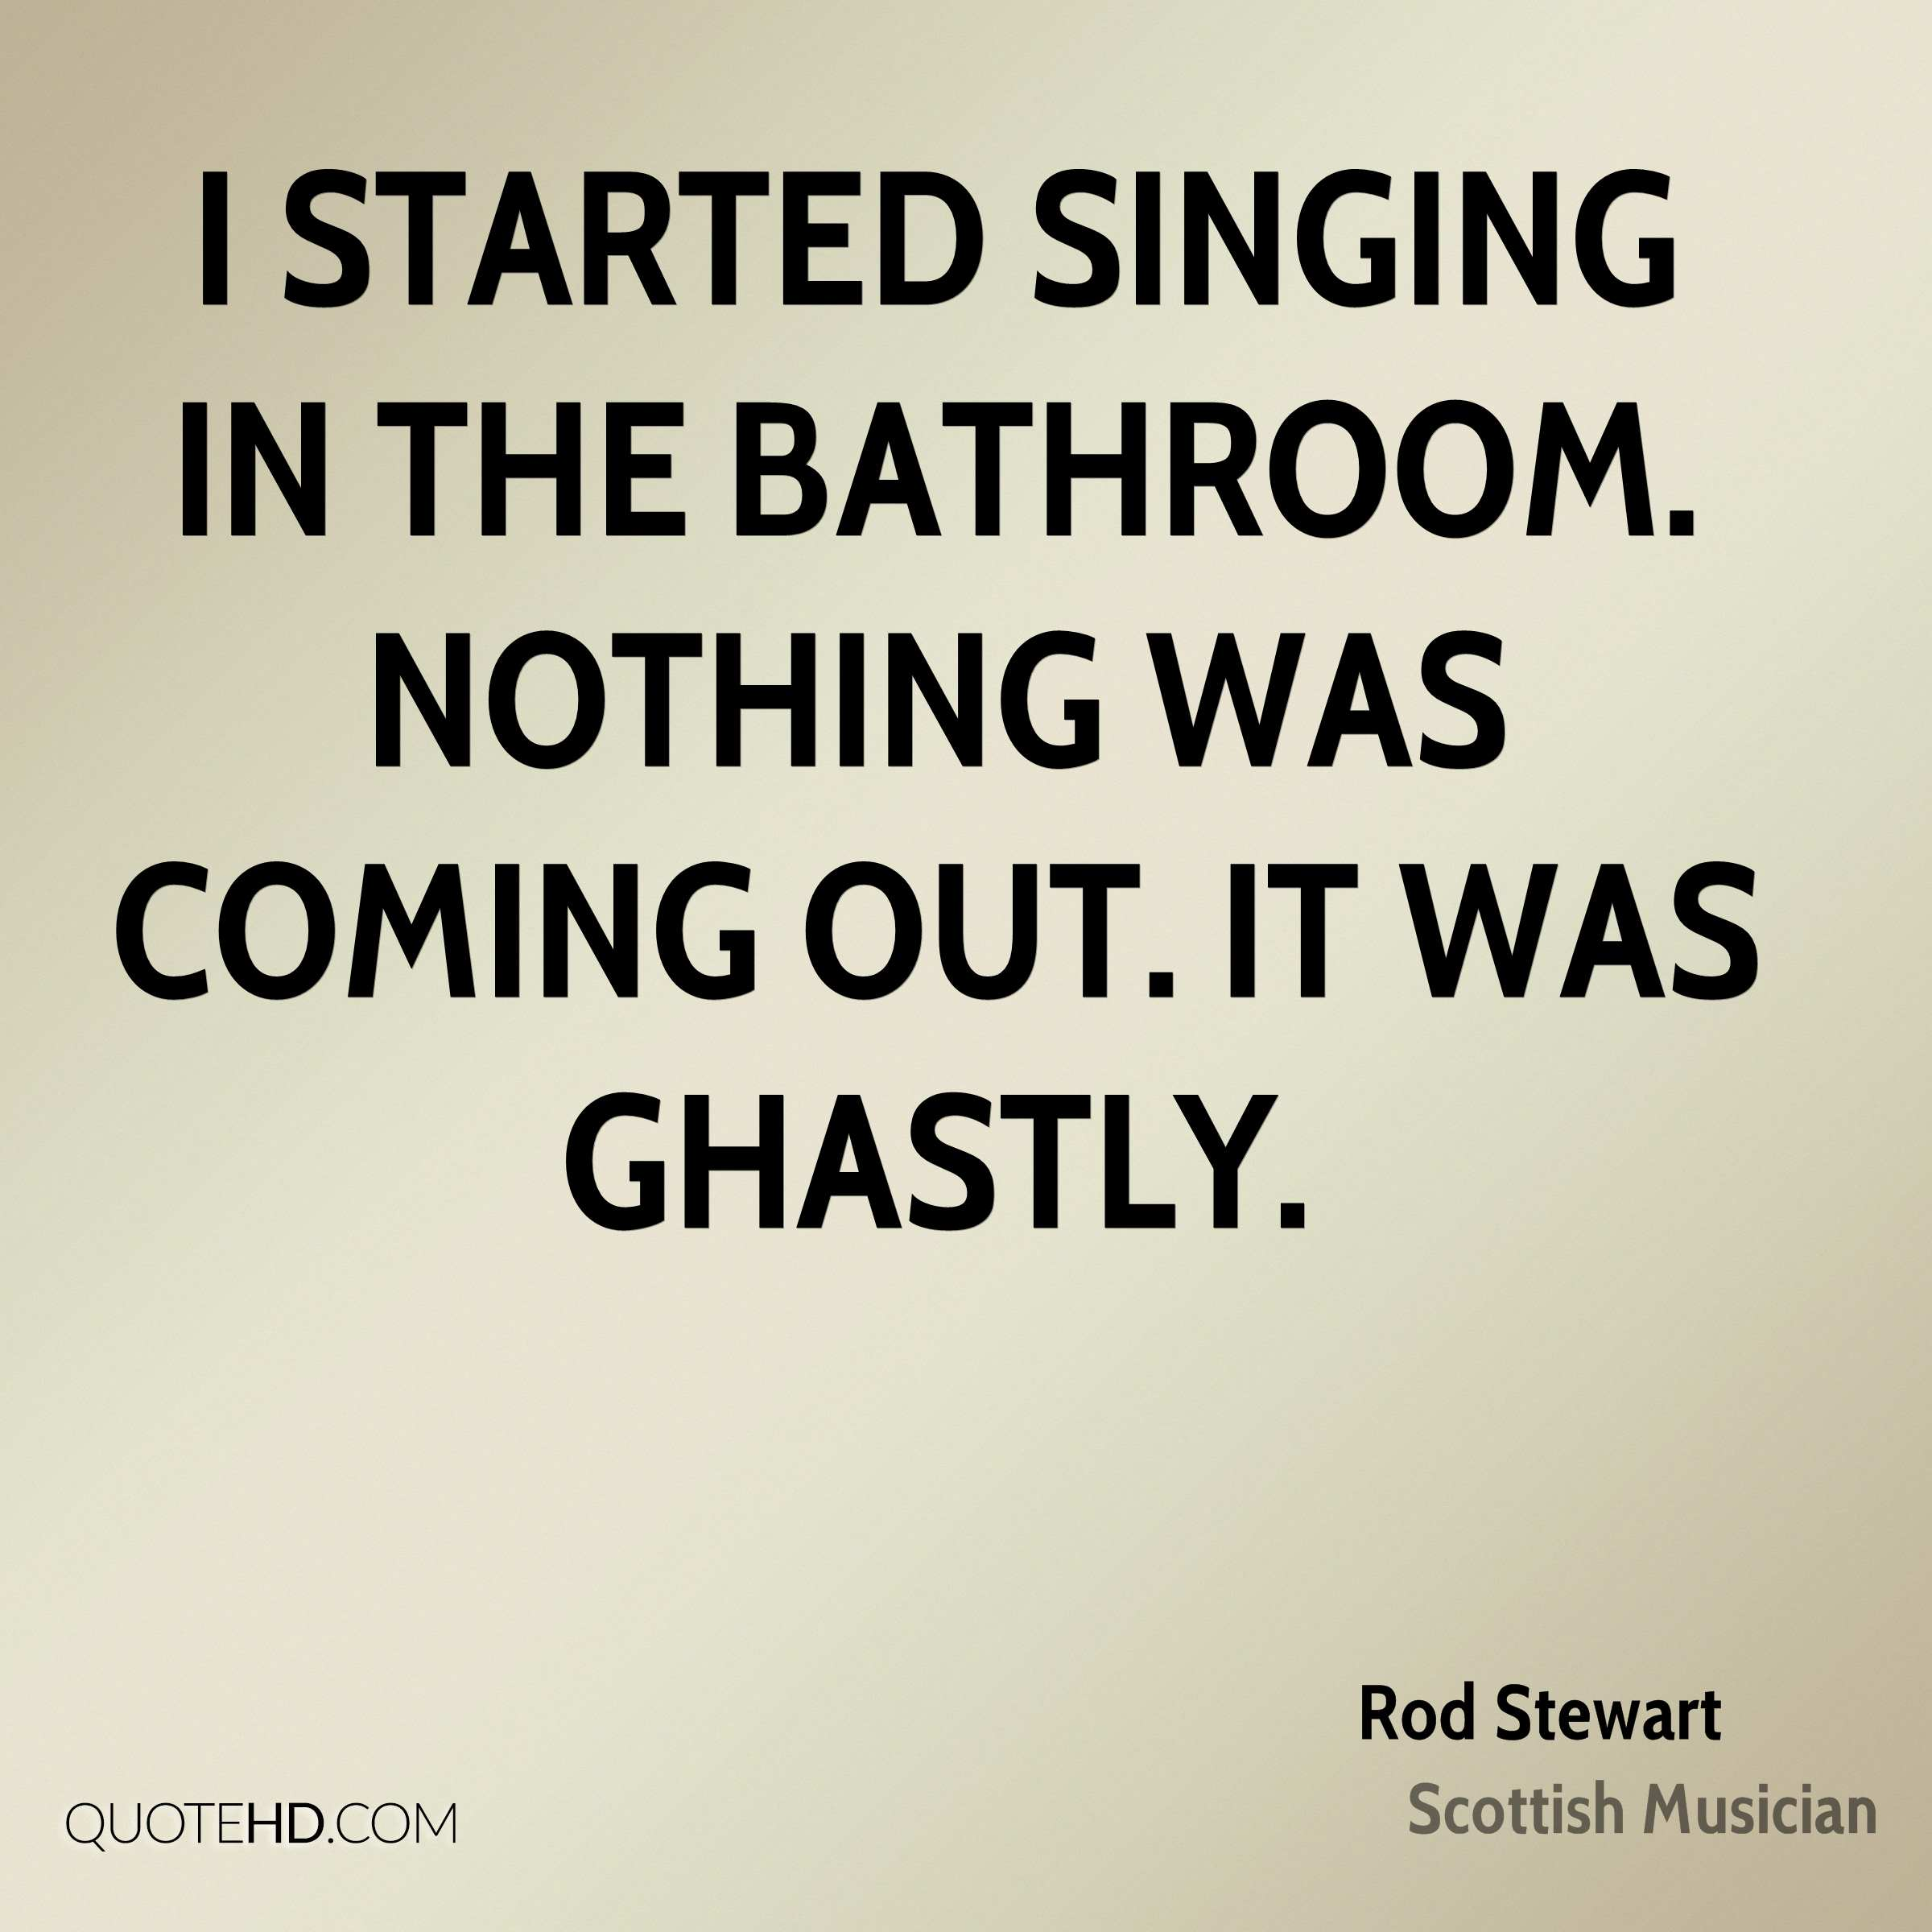 I started singing in the bathroom. Nothing was coming out. It was ghastly.